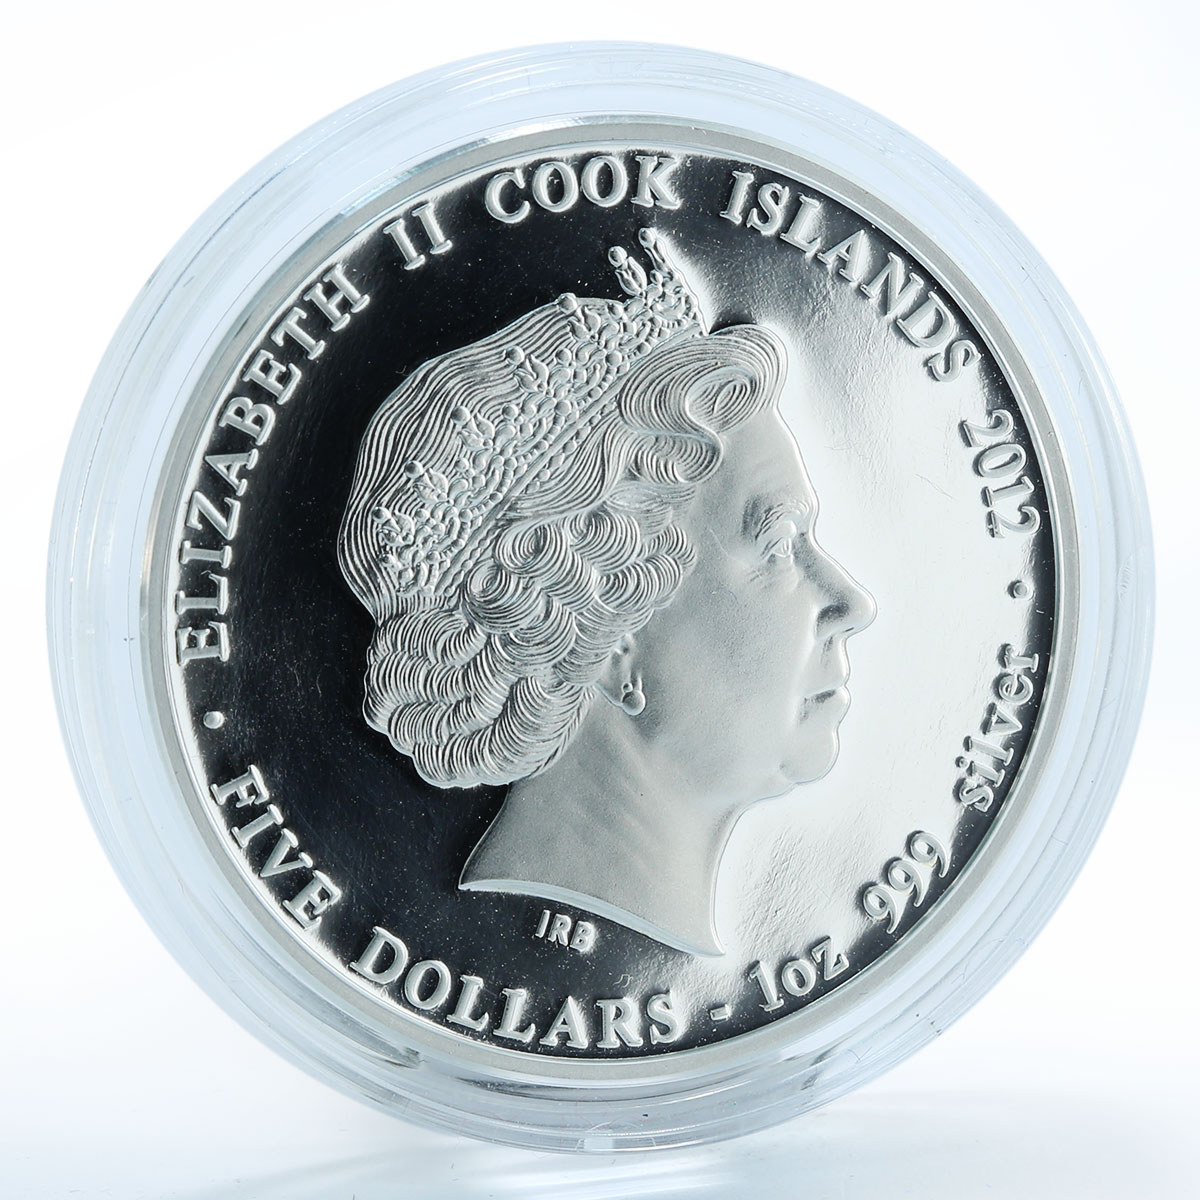 Cook Islands, $5, Year of the Dragon Best of Luck 2012 1oz Silver Coloured